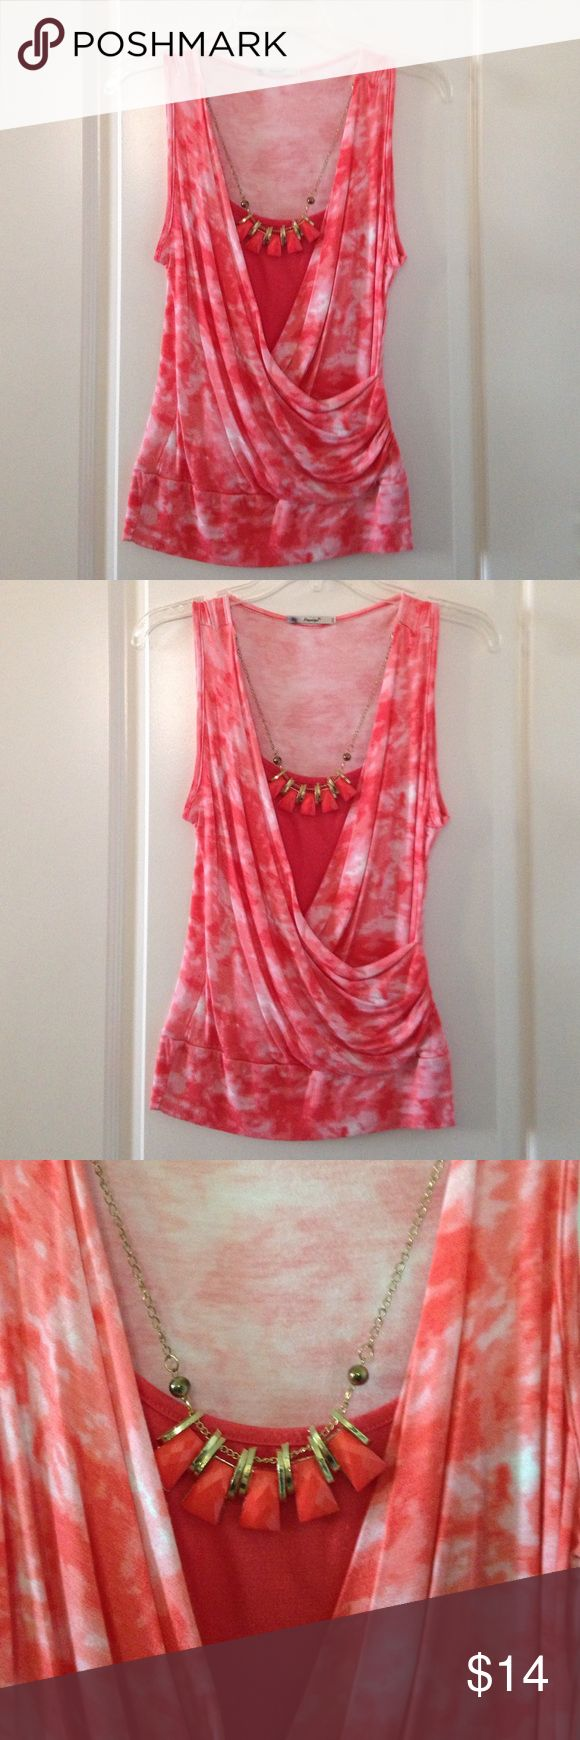 Pinky peach camouflage top w/necklace Pink/peachy colored camouflage short sleeve top. Comes with necklace. The front drapes beautifully. Worn once. Excellent condition. Papaya Tops Blouses